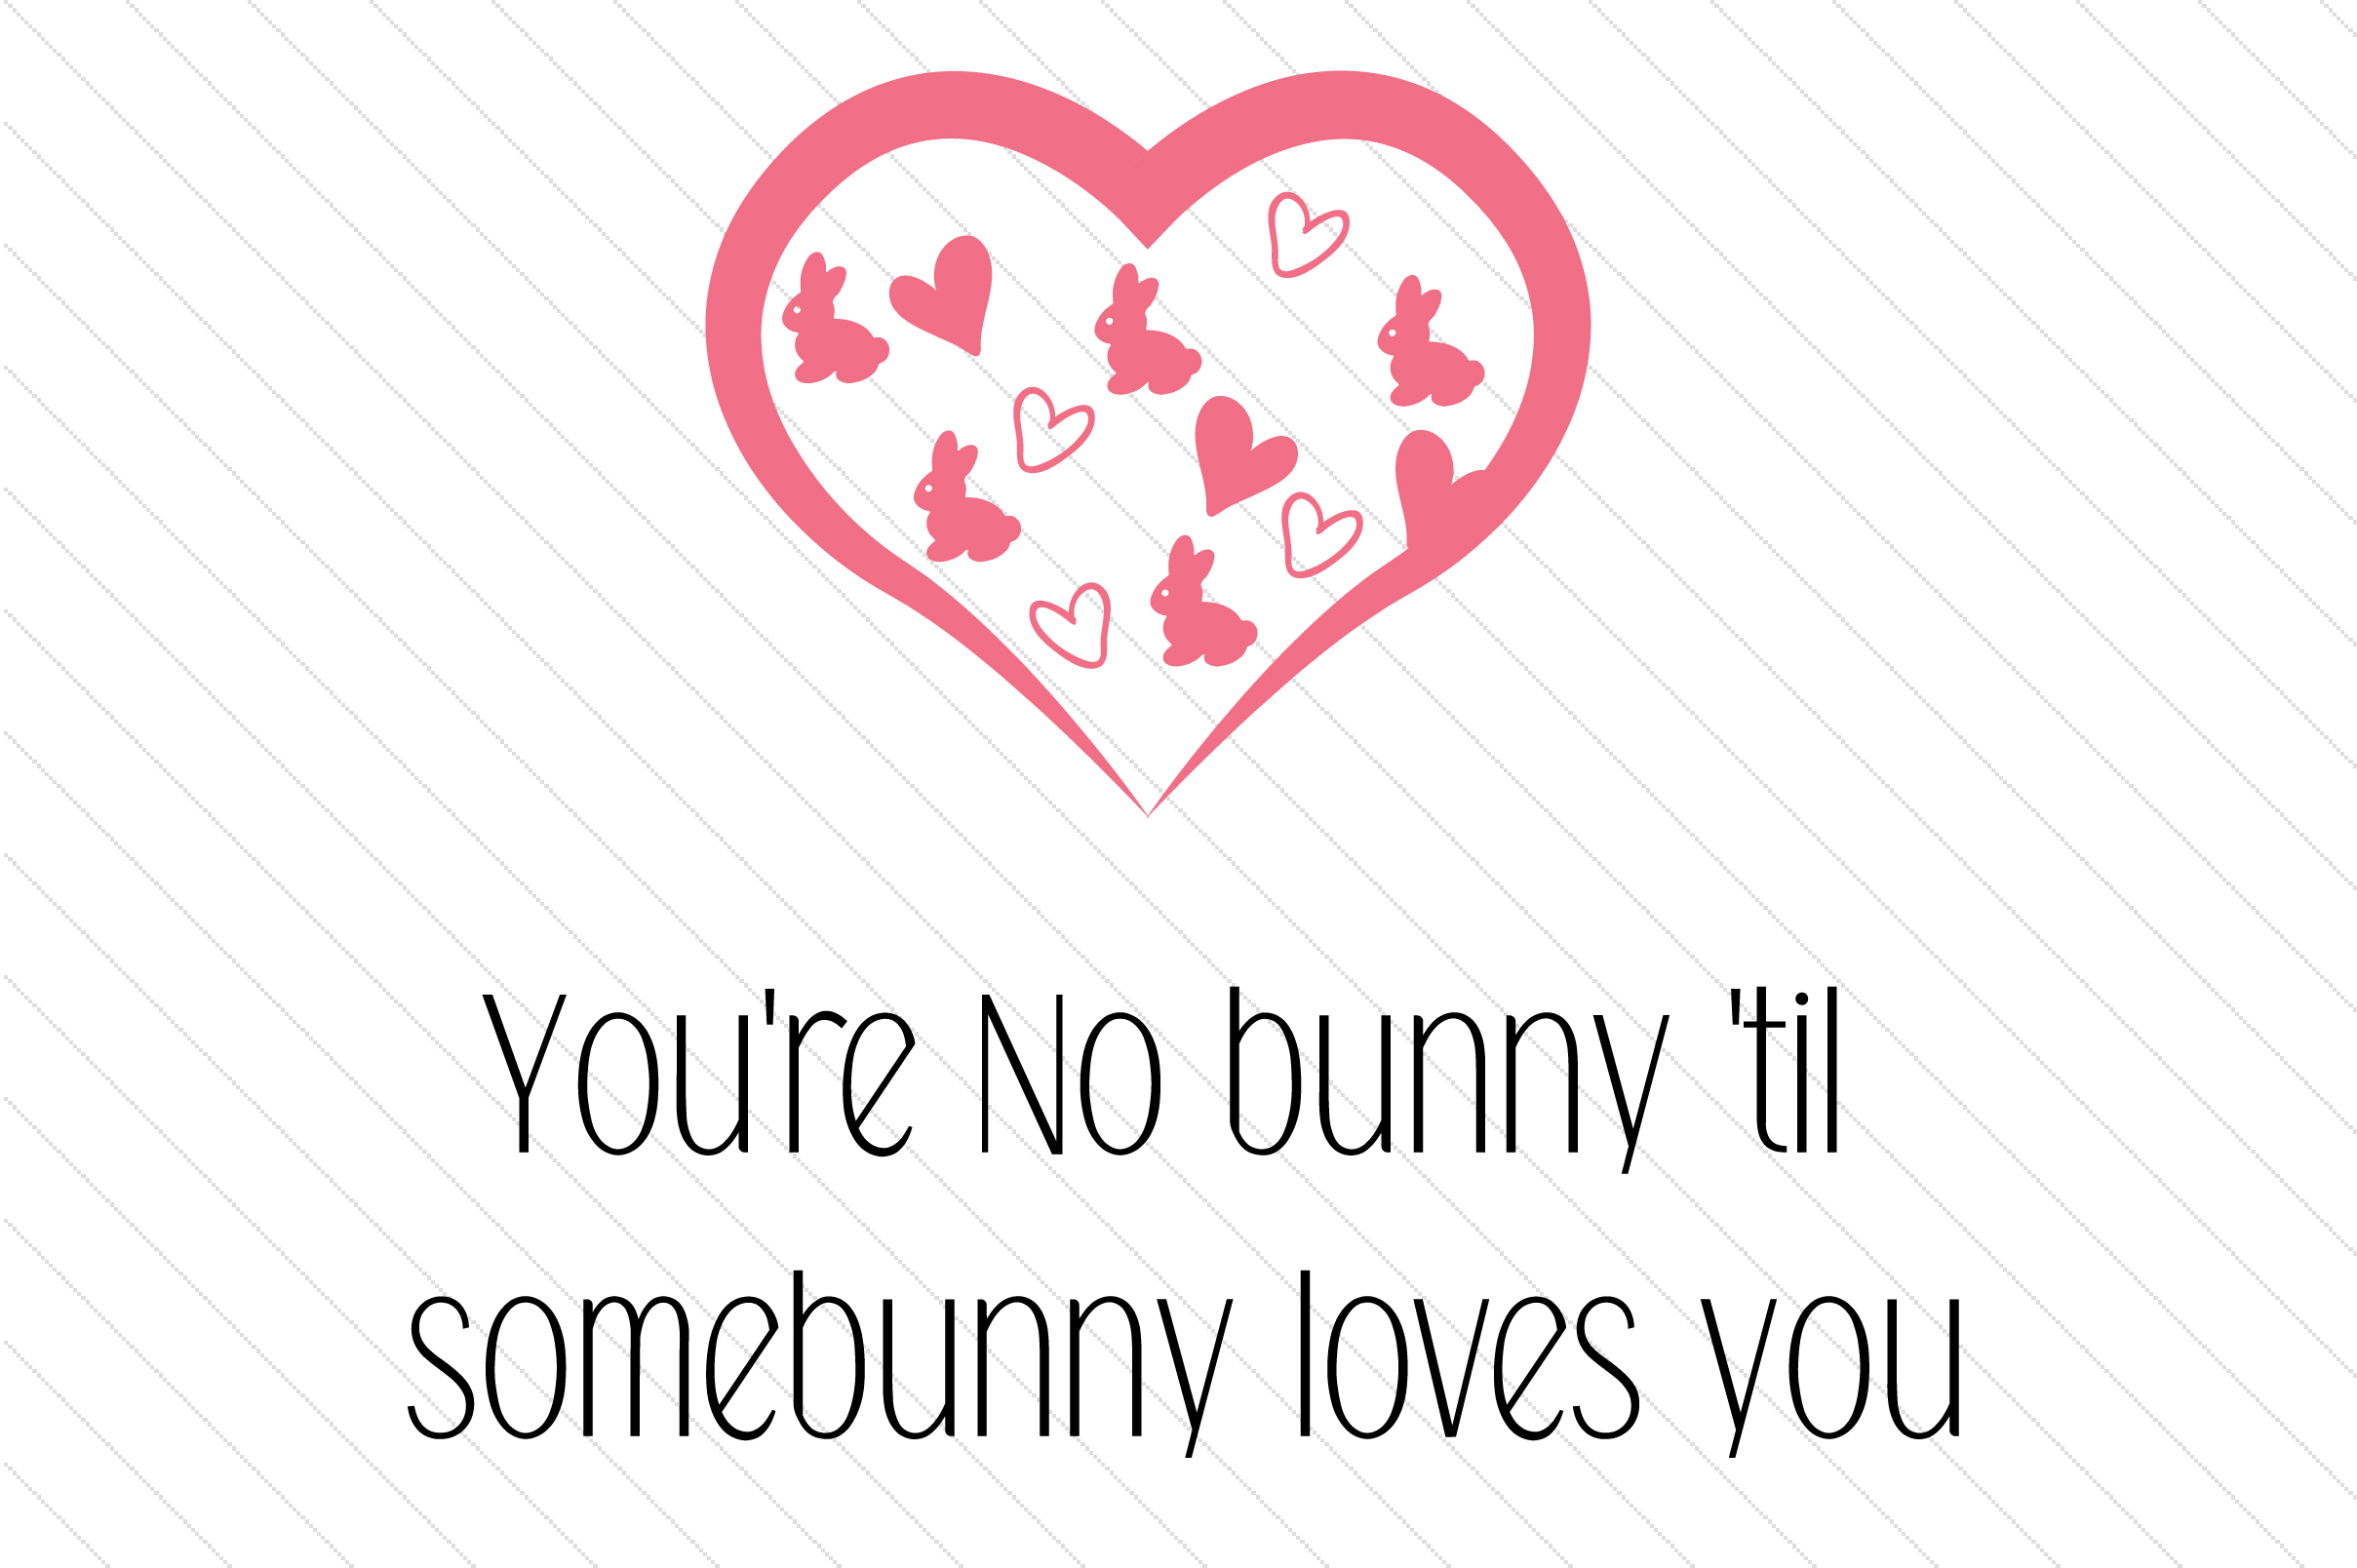 Download Free You Re No Bunny Til Somebunny Loves You Svg Cut File By for Cricut Explore, Silhouette and other cutting machines.